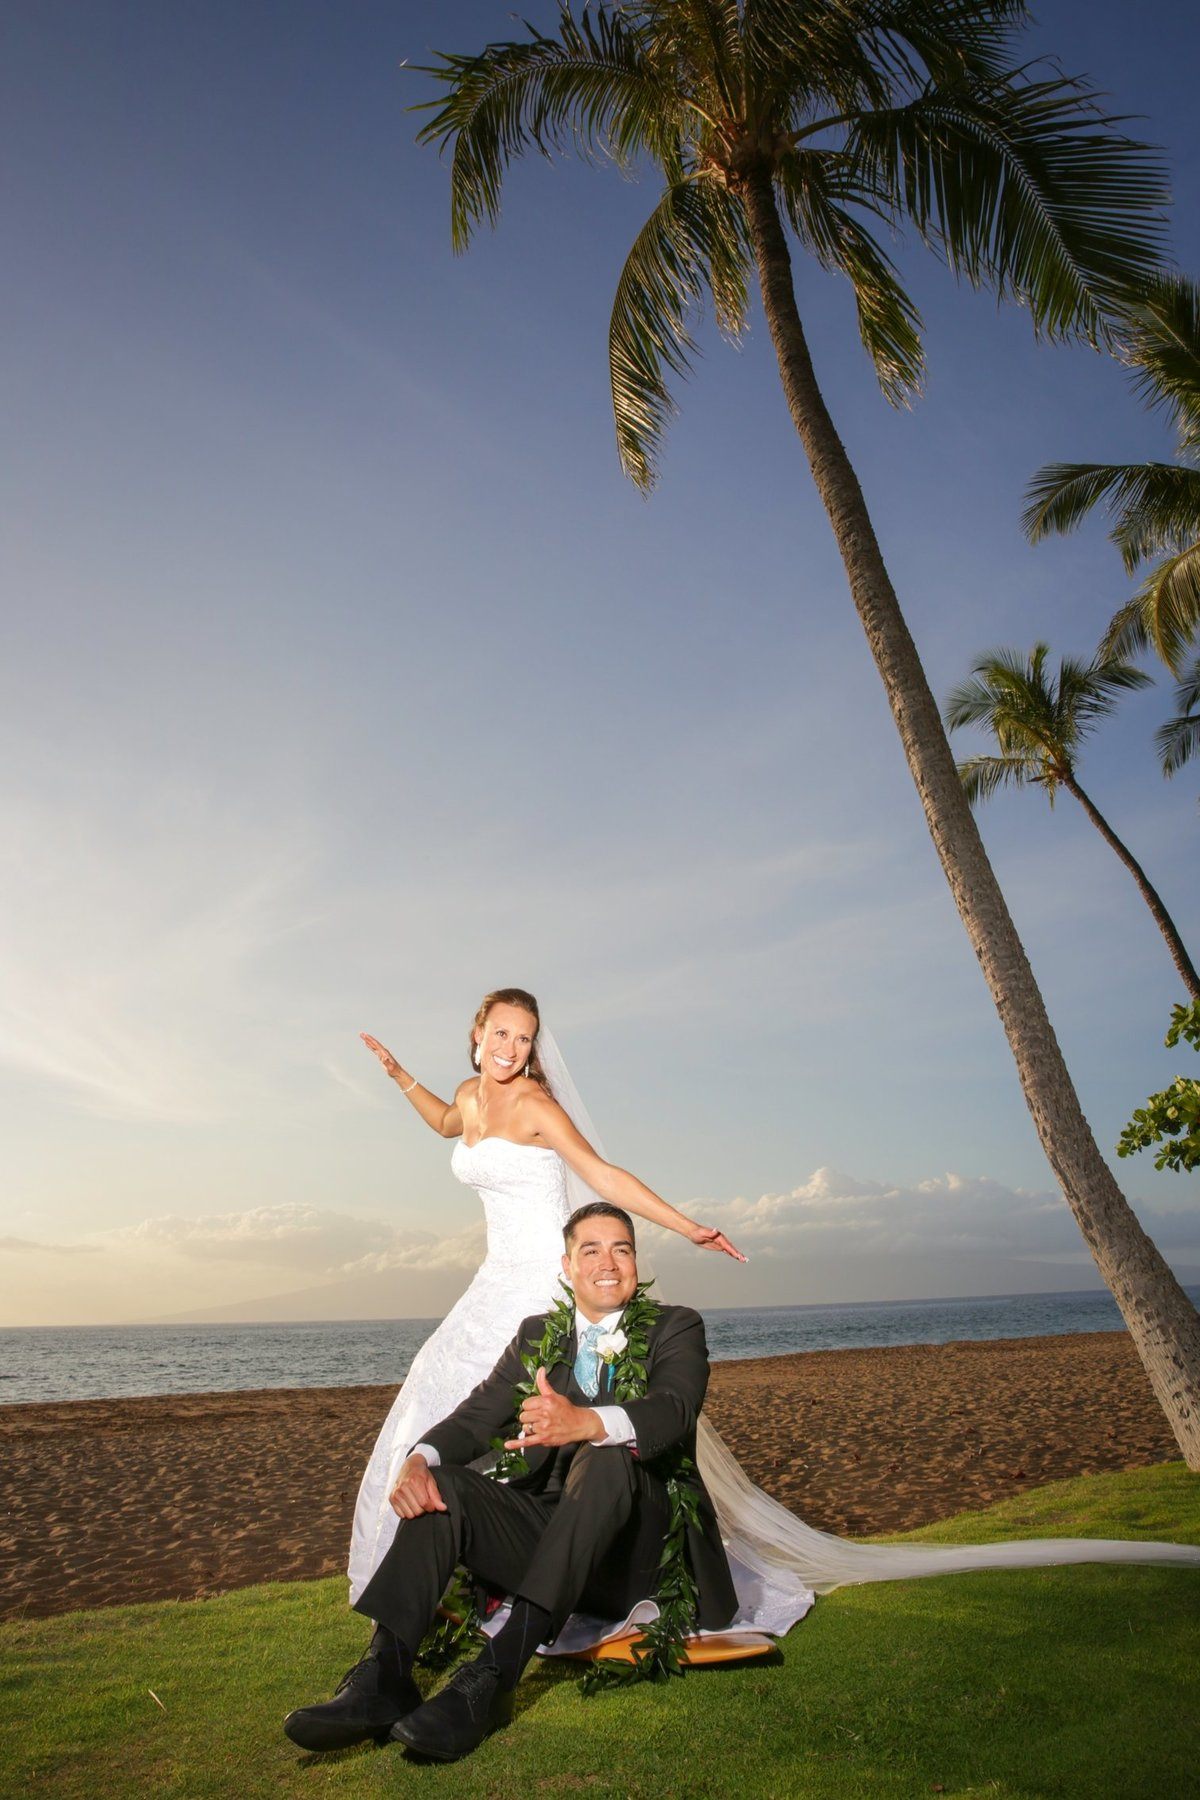 Maui Wedding Photography at The Westin Maui Resort and Spa with bride and groom at sunset